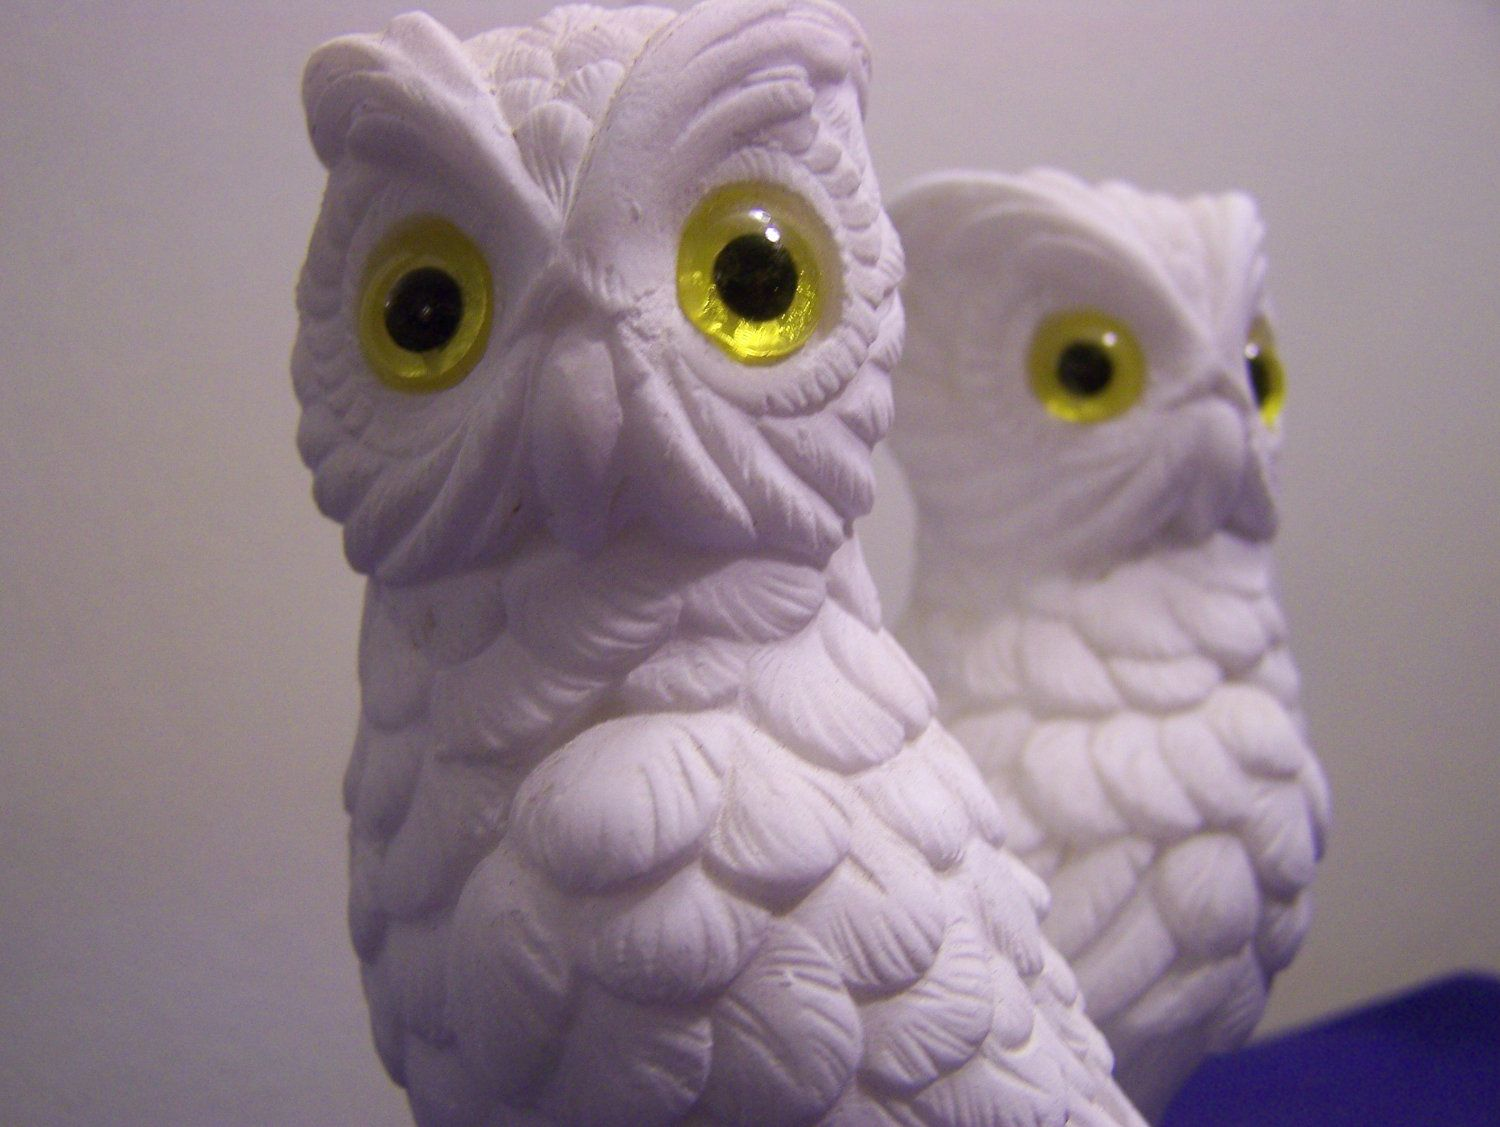 Antique Owl Figurines Vintage Set White Made In Italy By Treasures2share